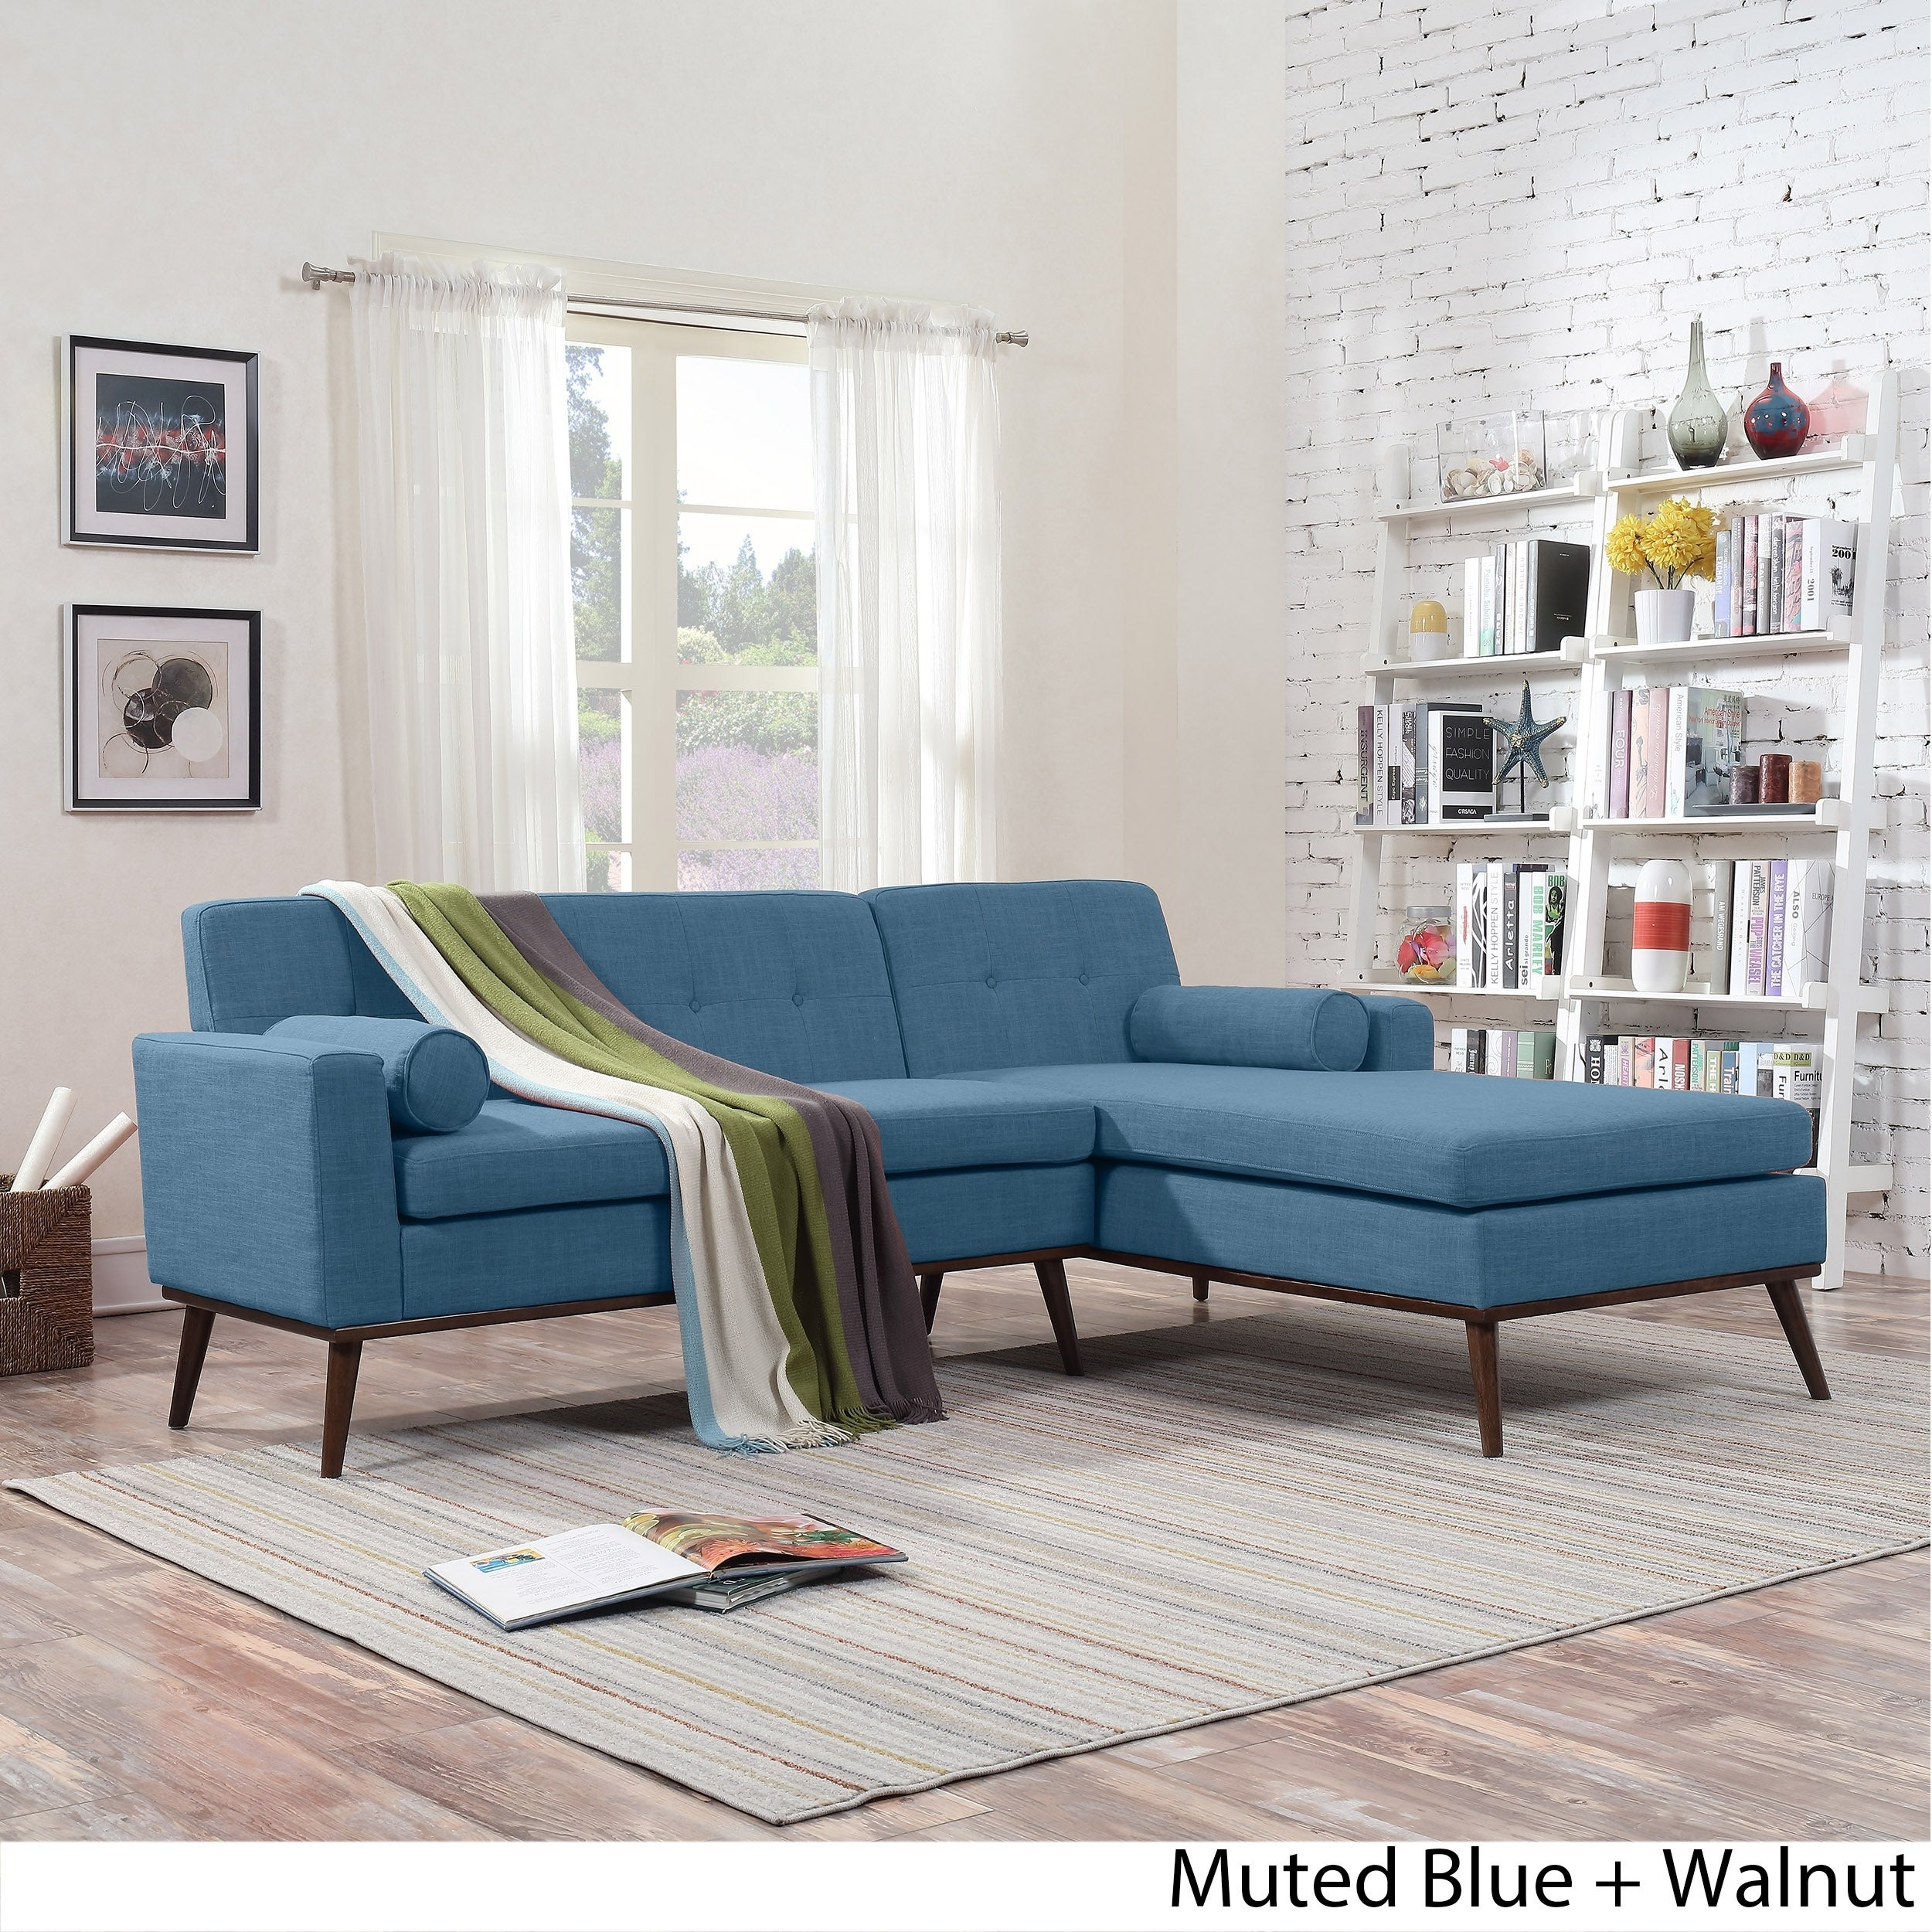 Miraculous Stormi Mid Century Modern 2 Piece Mut Sectional Sofa And Lounge Set By Christopher Knight Home Onthecornerstone Fun Painted Chair Ideas Images Onthecornerstoneorg